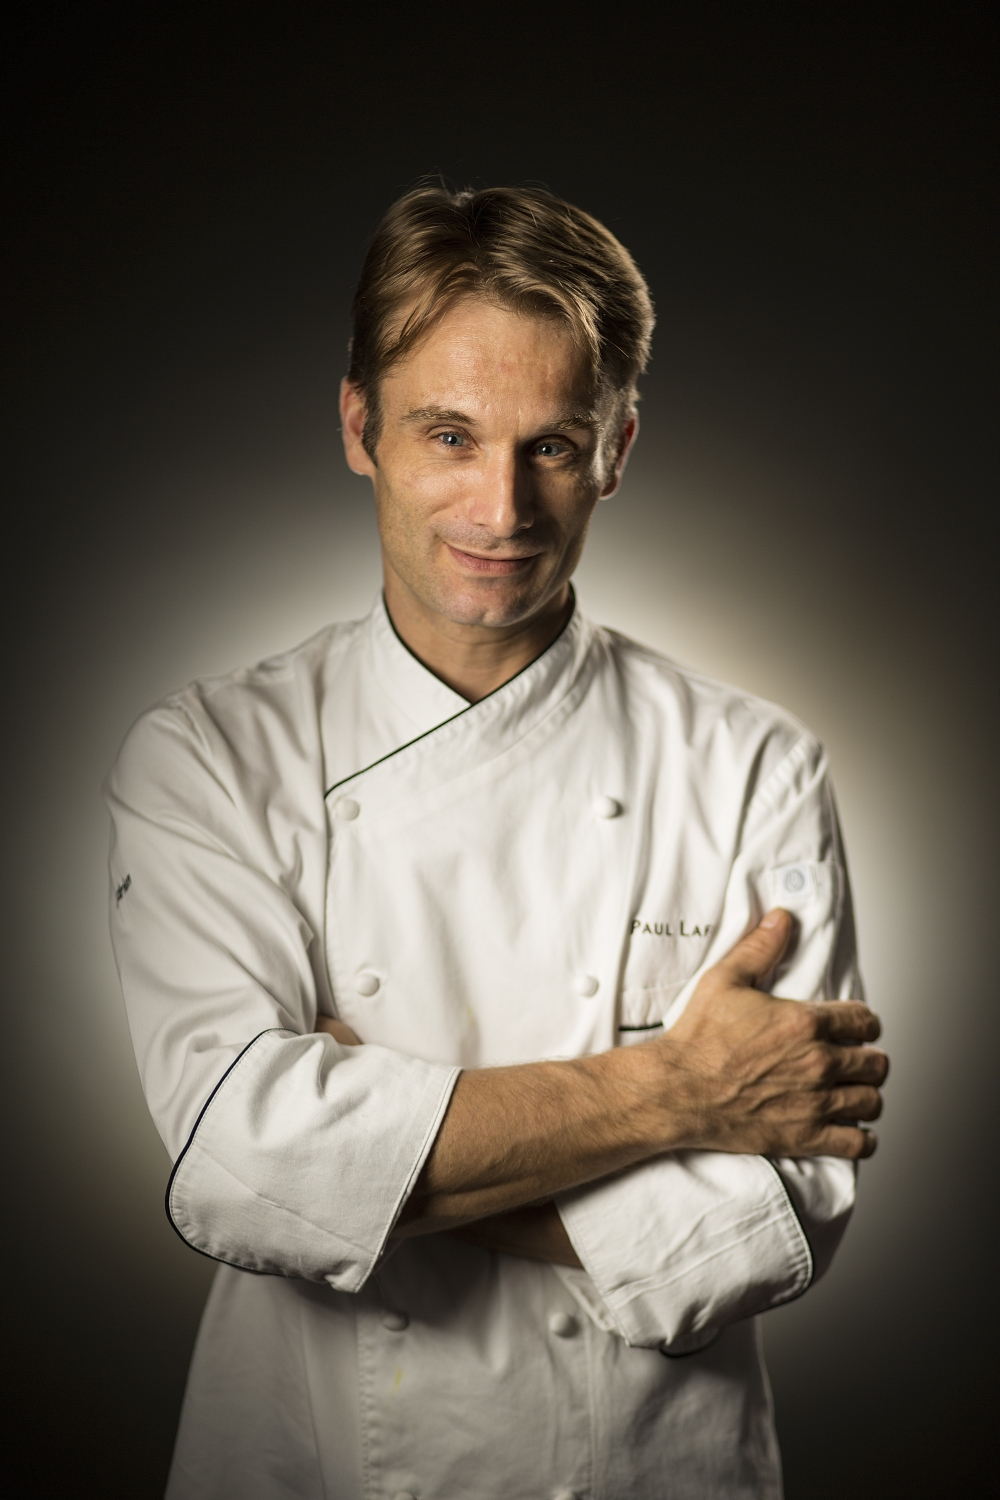 an interview adrien nanus executive chef at paul lafayet image title